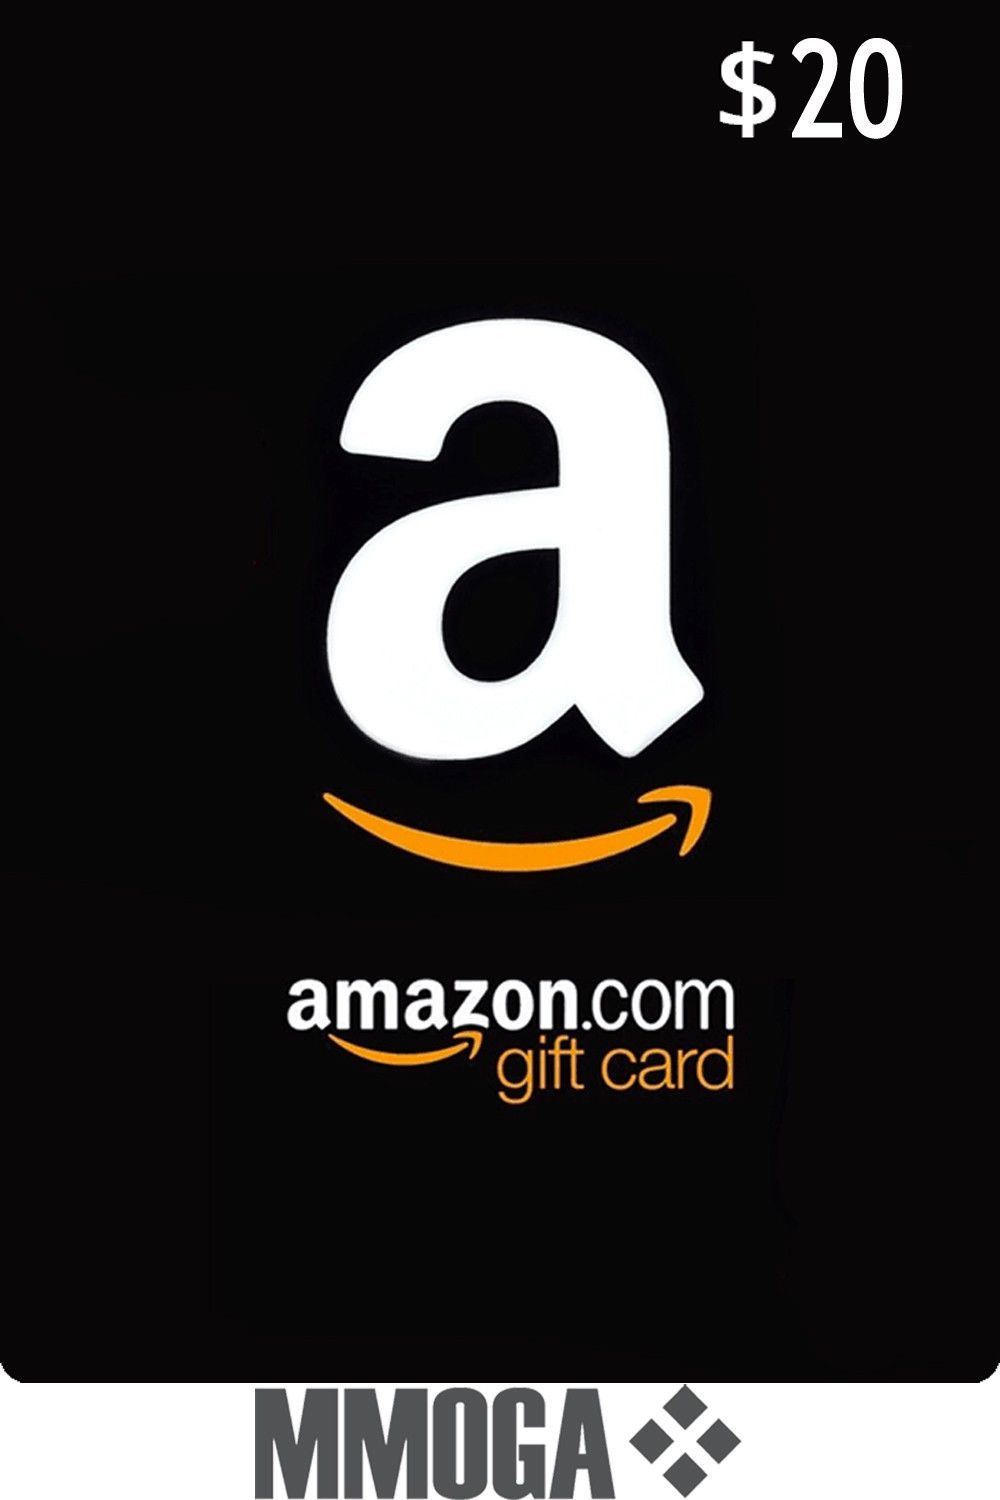 Prepaid Gaming Cards 156597 20 Amazon Card 20 Dollar Code Fast And Free Email Delivery Usa Amaz Itunes Gift Cards Amazon Gift Card Free Amazon Gift Cards